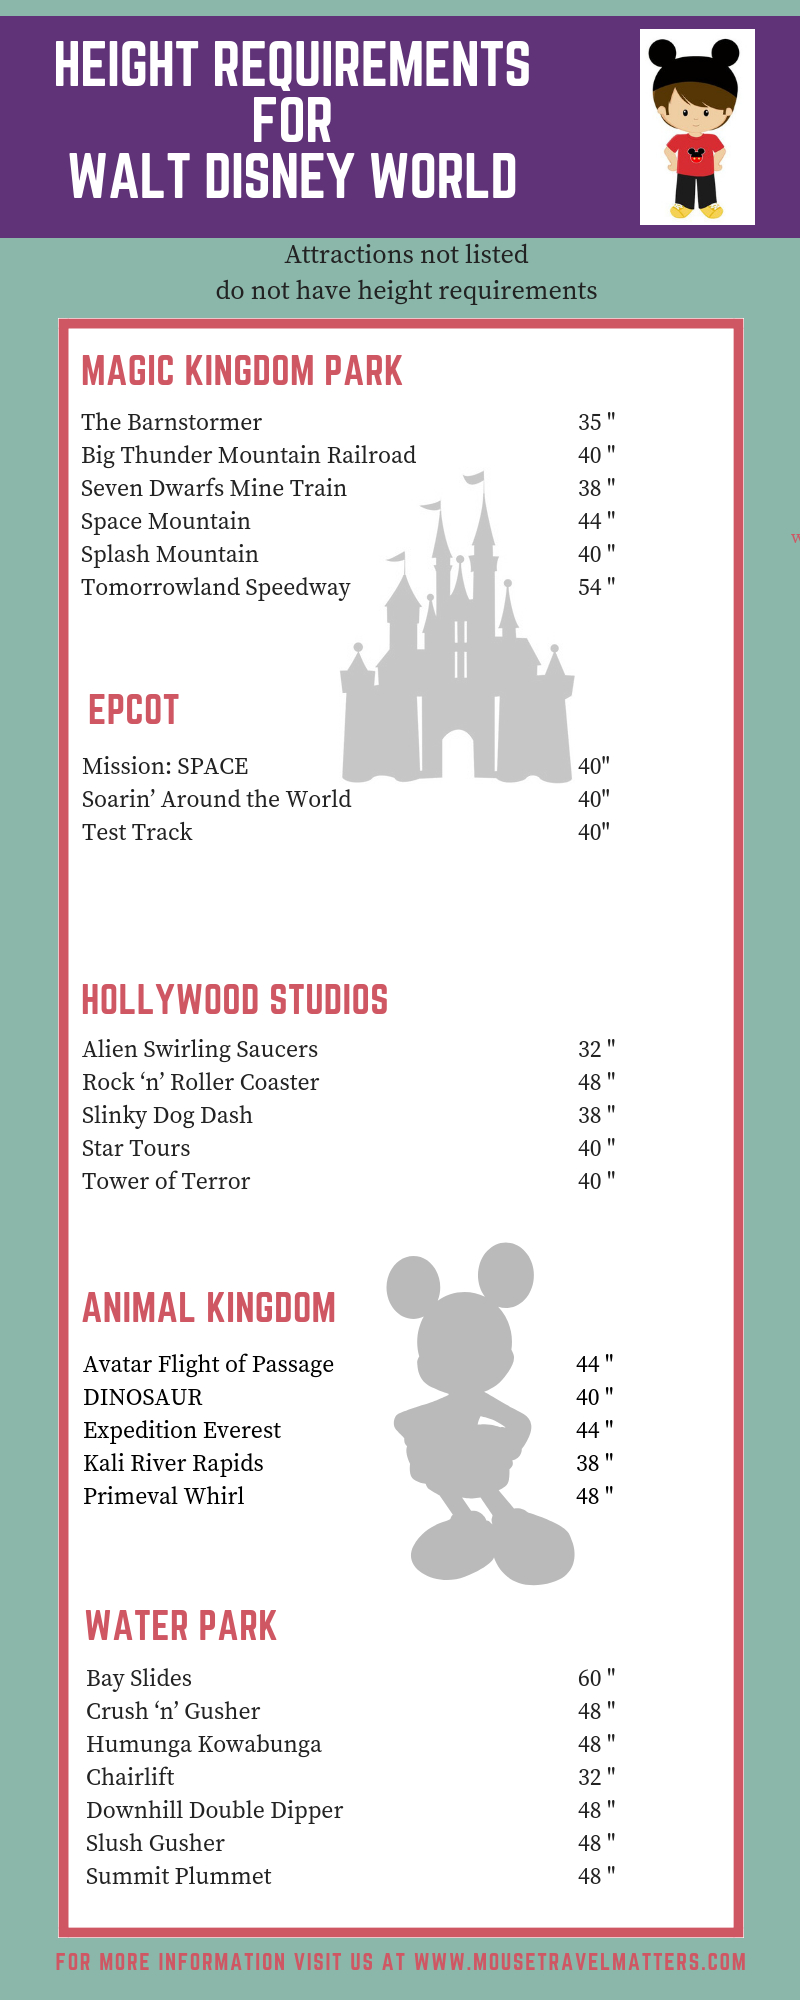 What Are The Height Requirements For Disney World In 2020